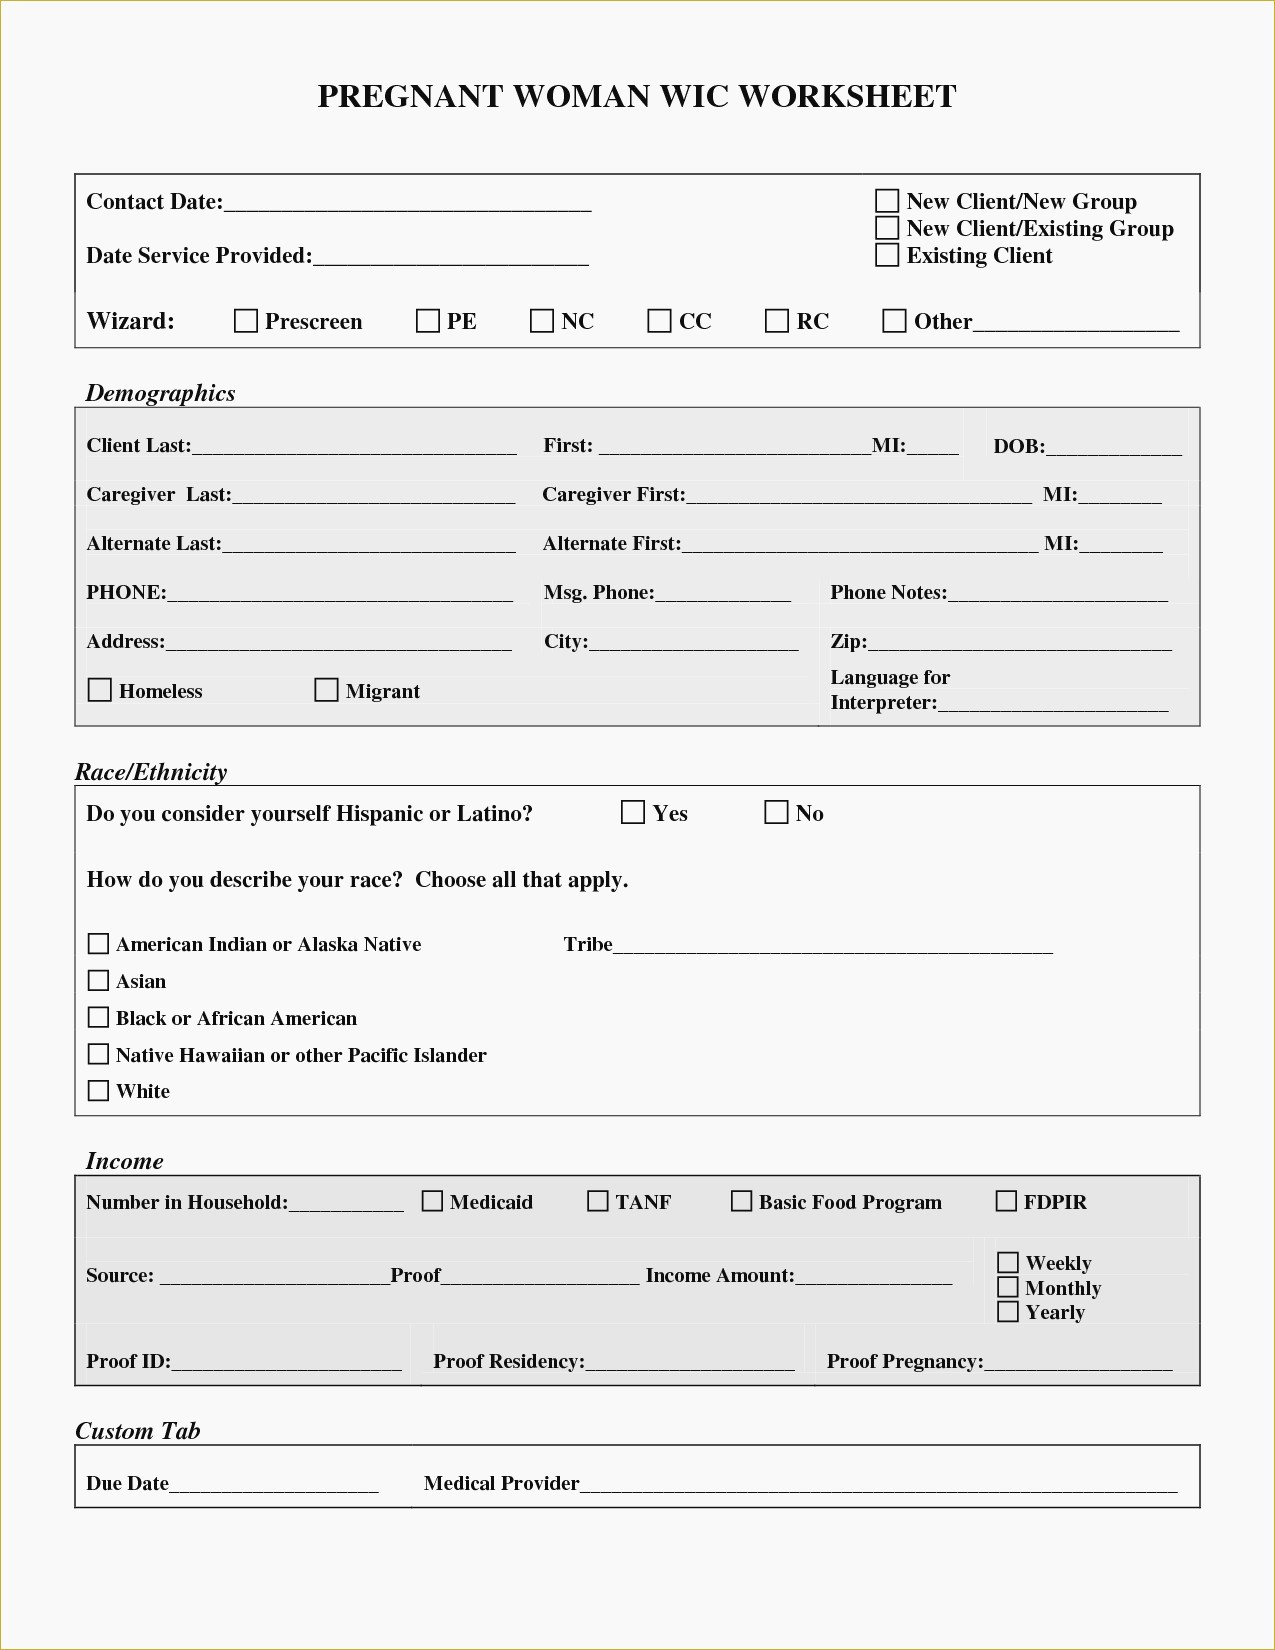 Free Printable Fake Pregnancy Papers Fresh Hospital Discharge - Free Printable Fake Pregnancy Papers